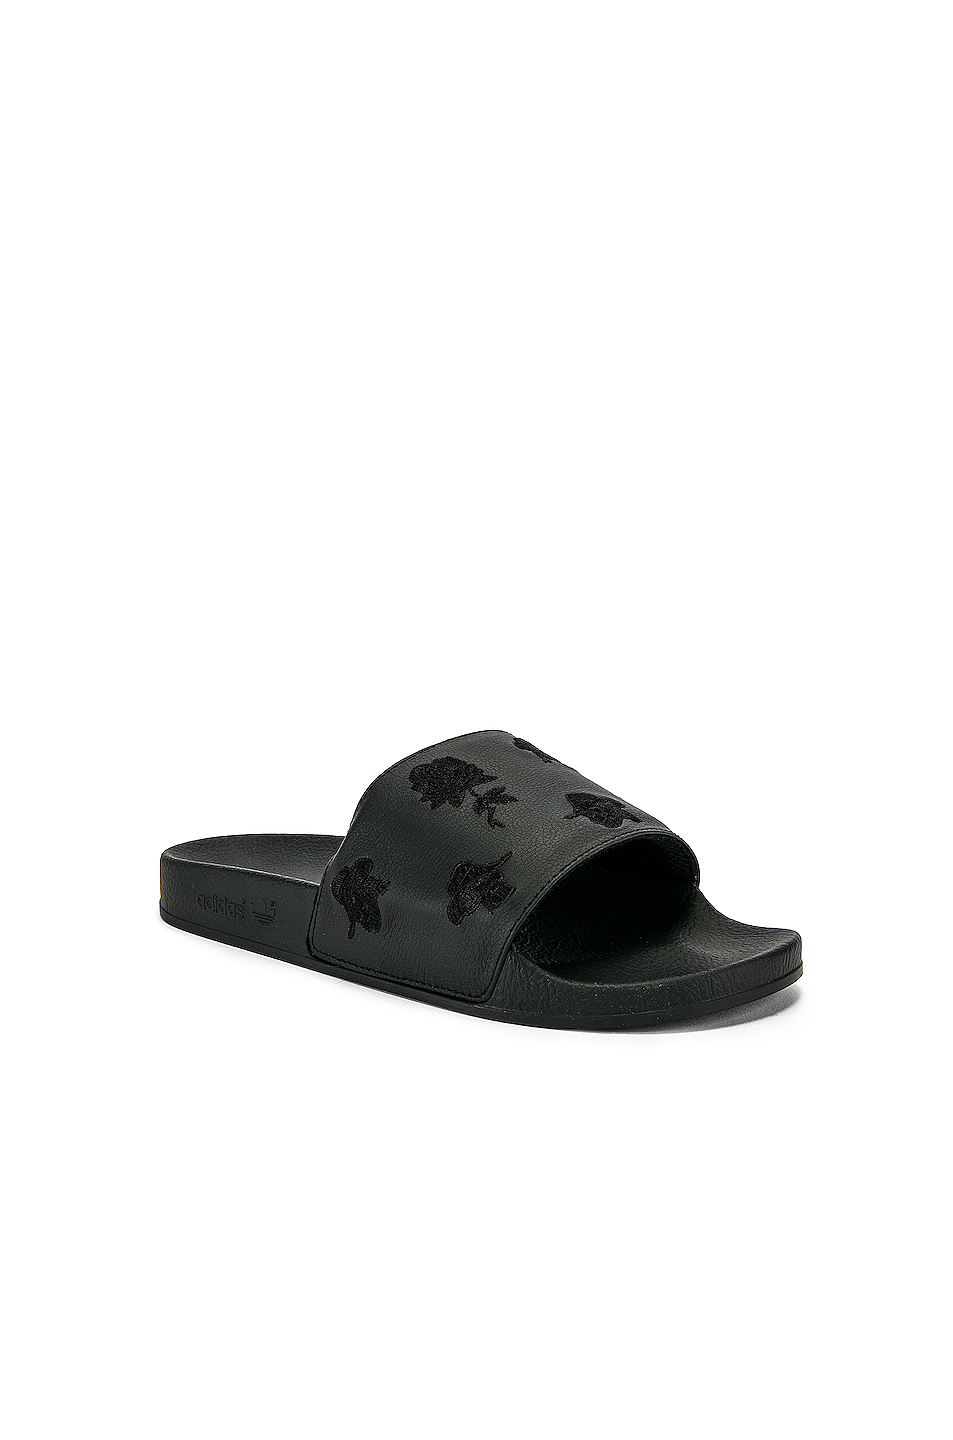 8d016e430df5 Buy Original Y-3 Yohji Yamamoto Adilette Sandal at Indonesia